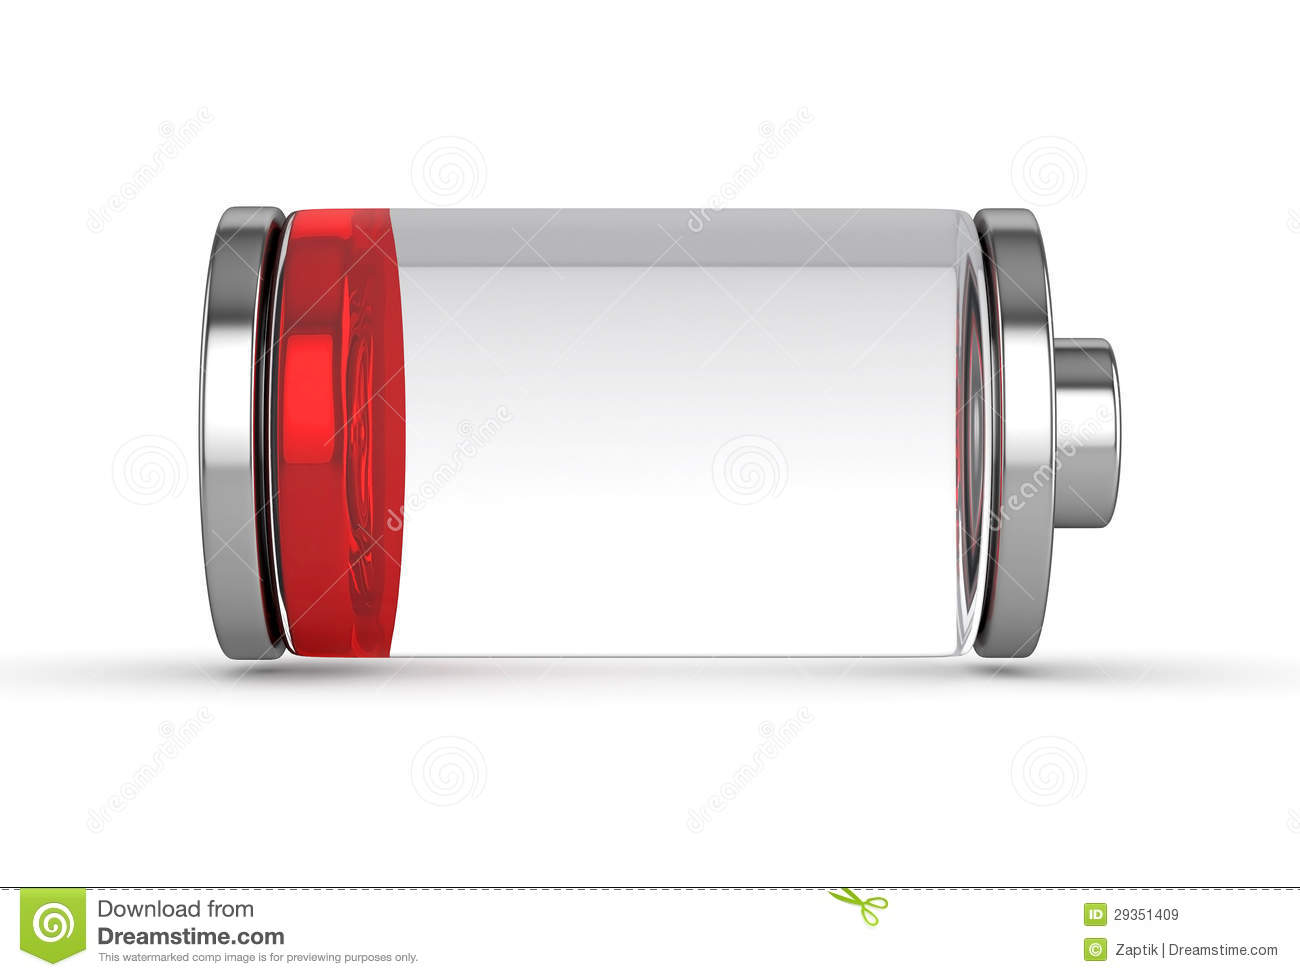 Low Battery Royalty Free Stock Images - Image: 29351409